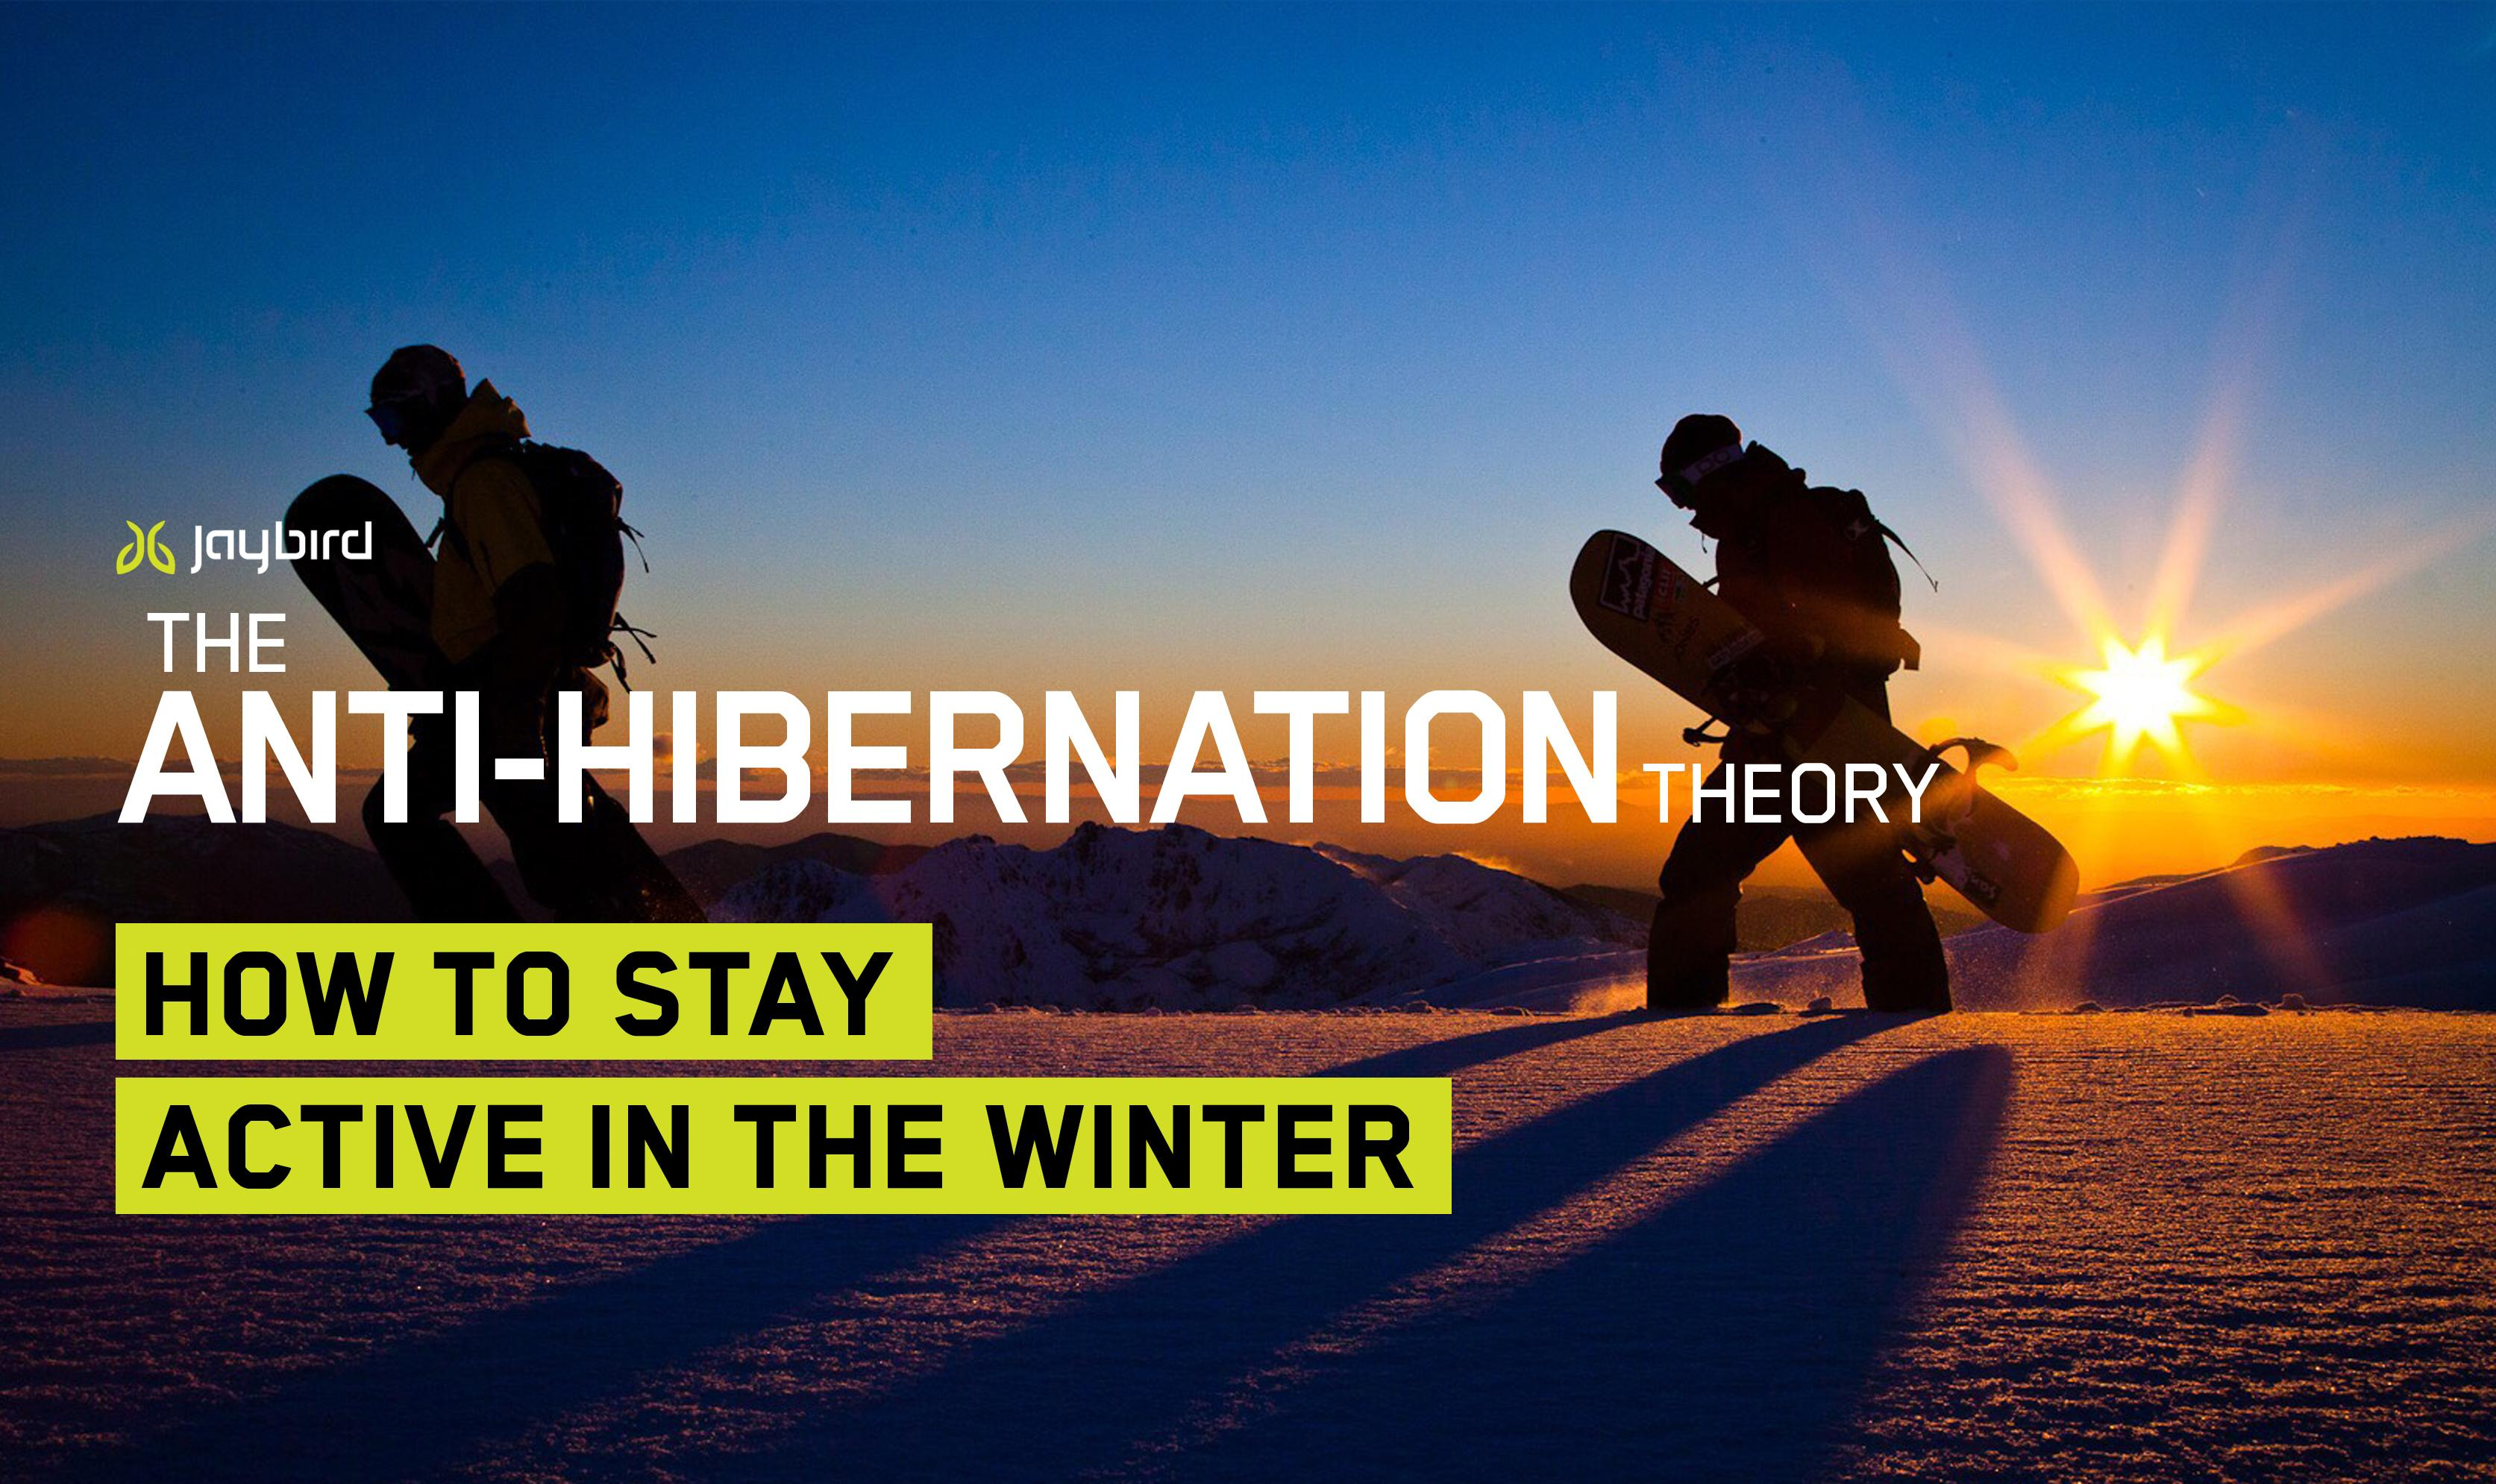 The Anti-Hibernation Theory: How to Stay Active in The Winter